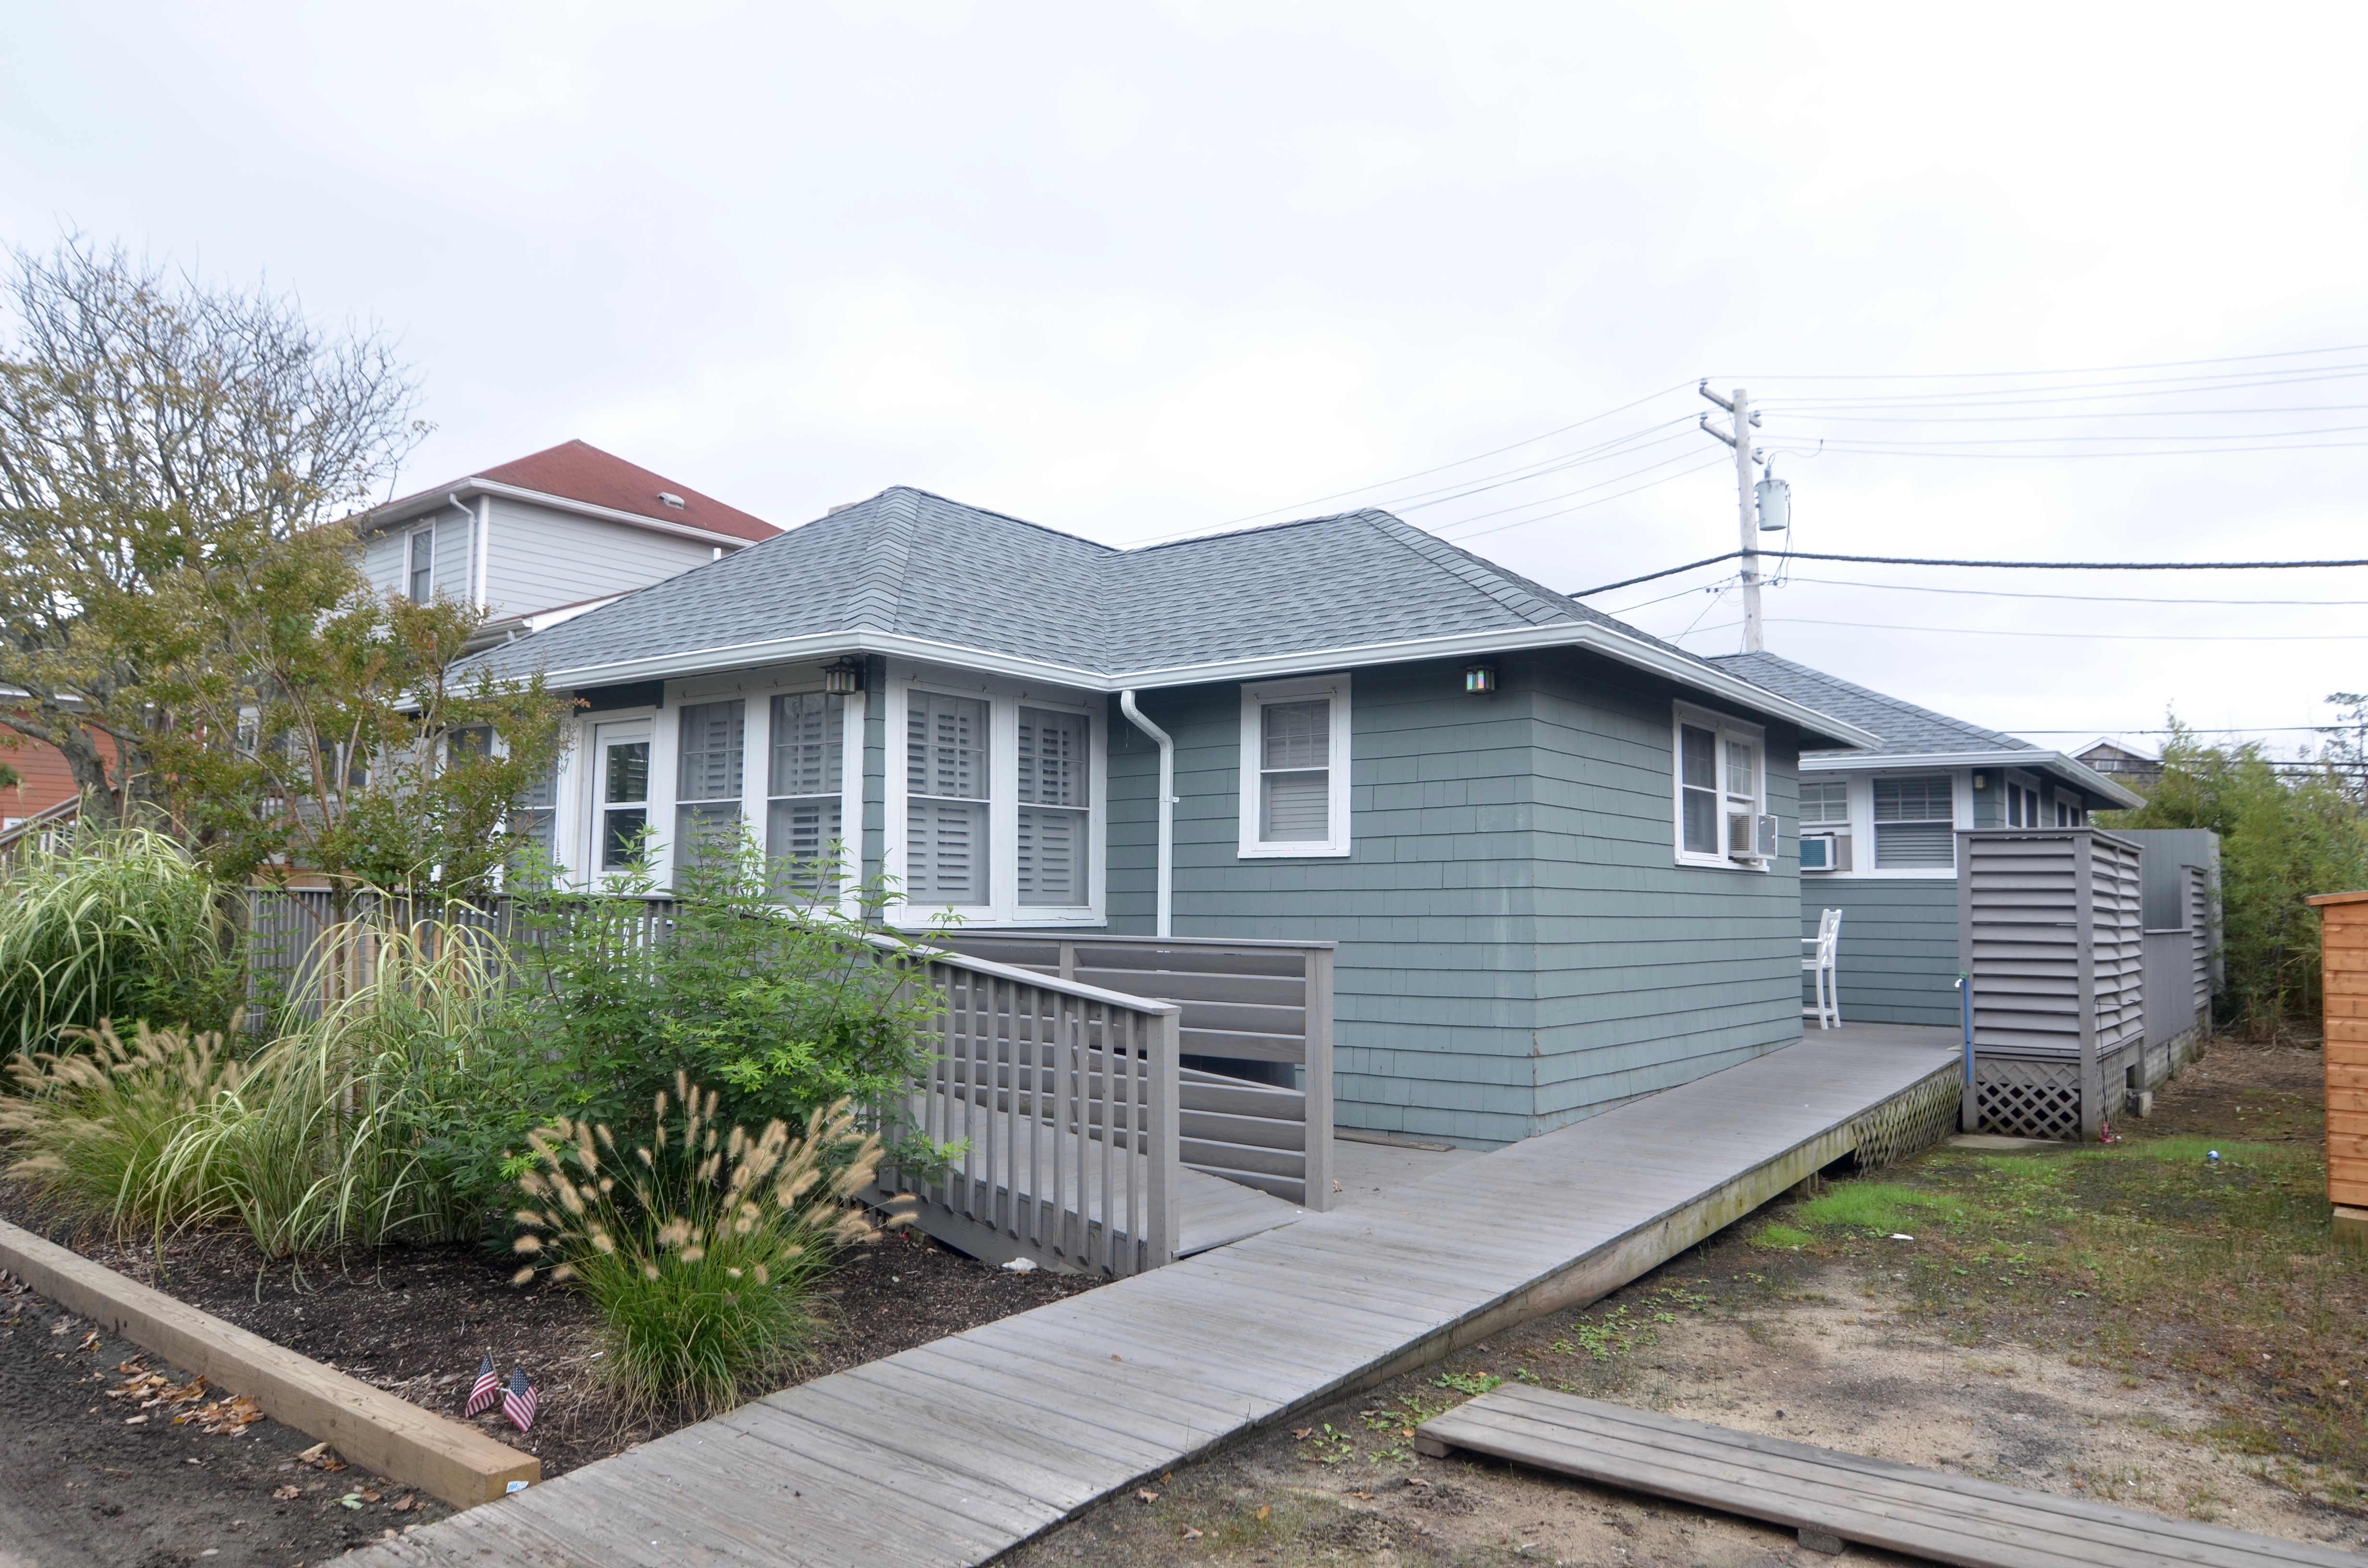 Beautifully renovated Ocean Beach home on the bordering street of Seaview. 5 bedrooms and 2 bath with large open living area. Private decks. AC. Outdoor Shower.